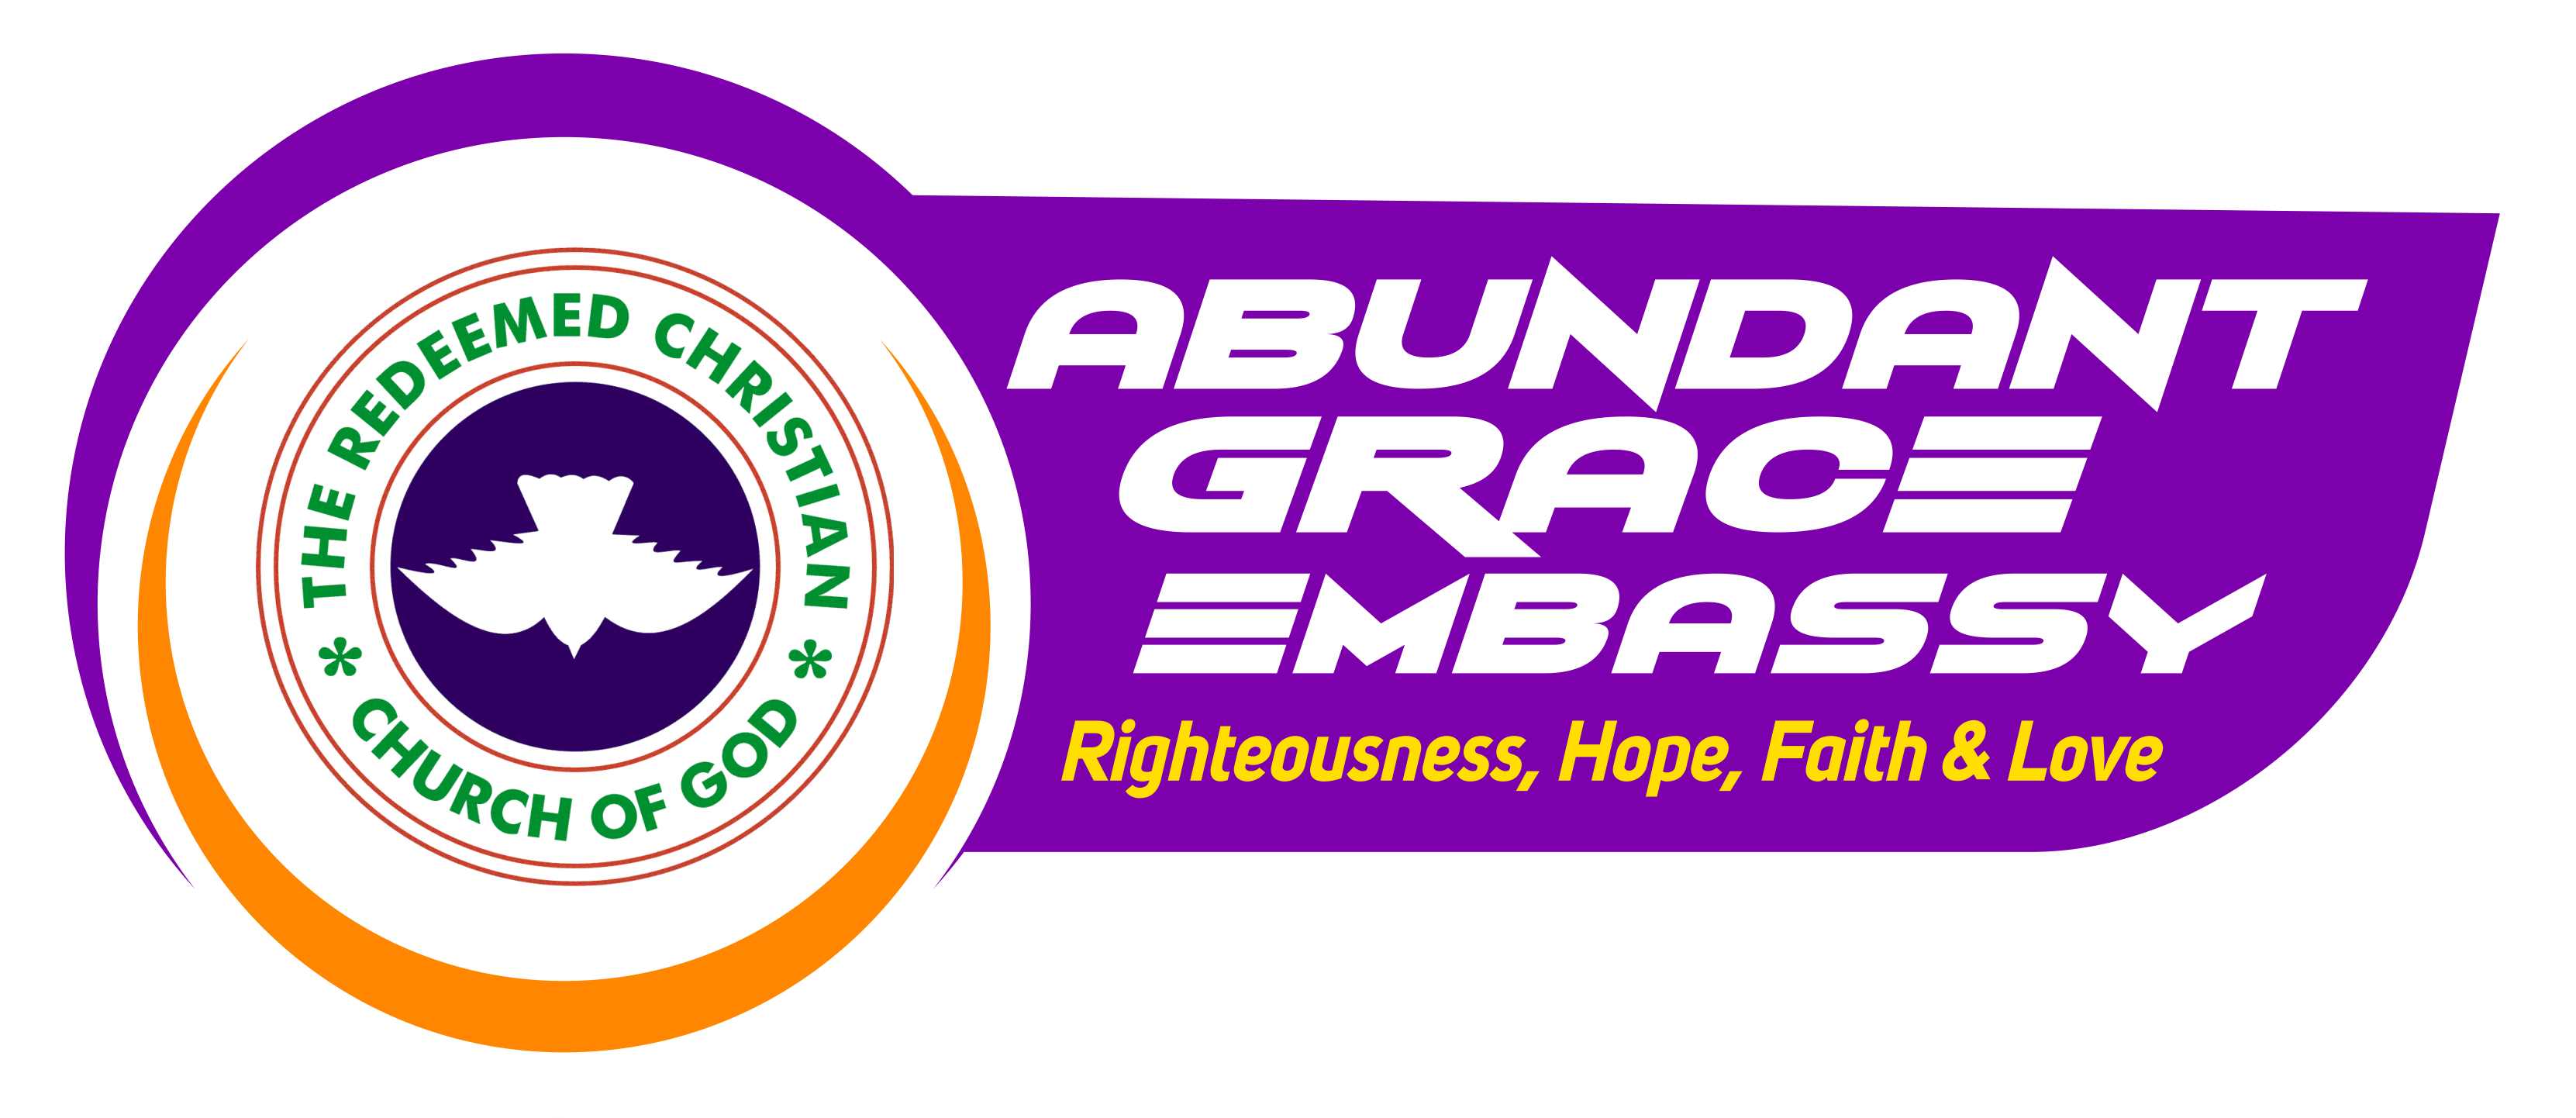 RCCG Abundant Grace Embassy Parish